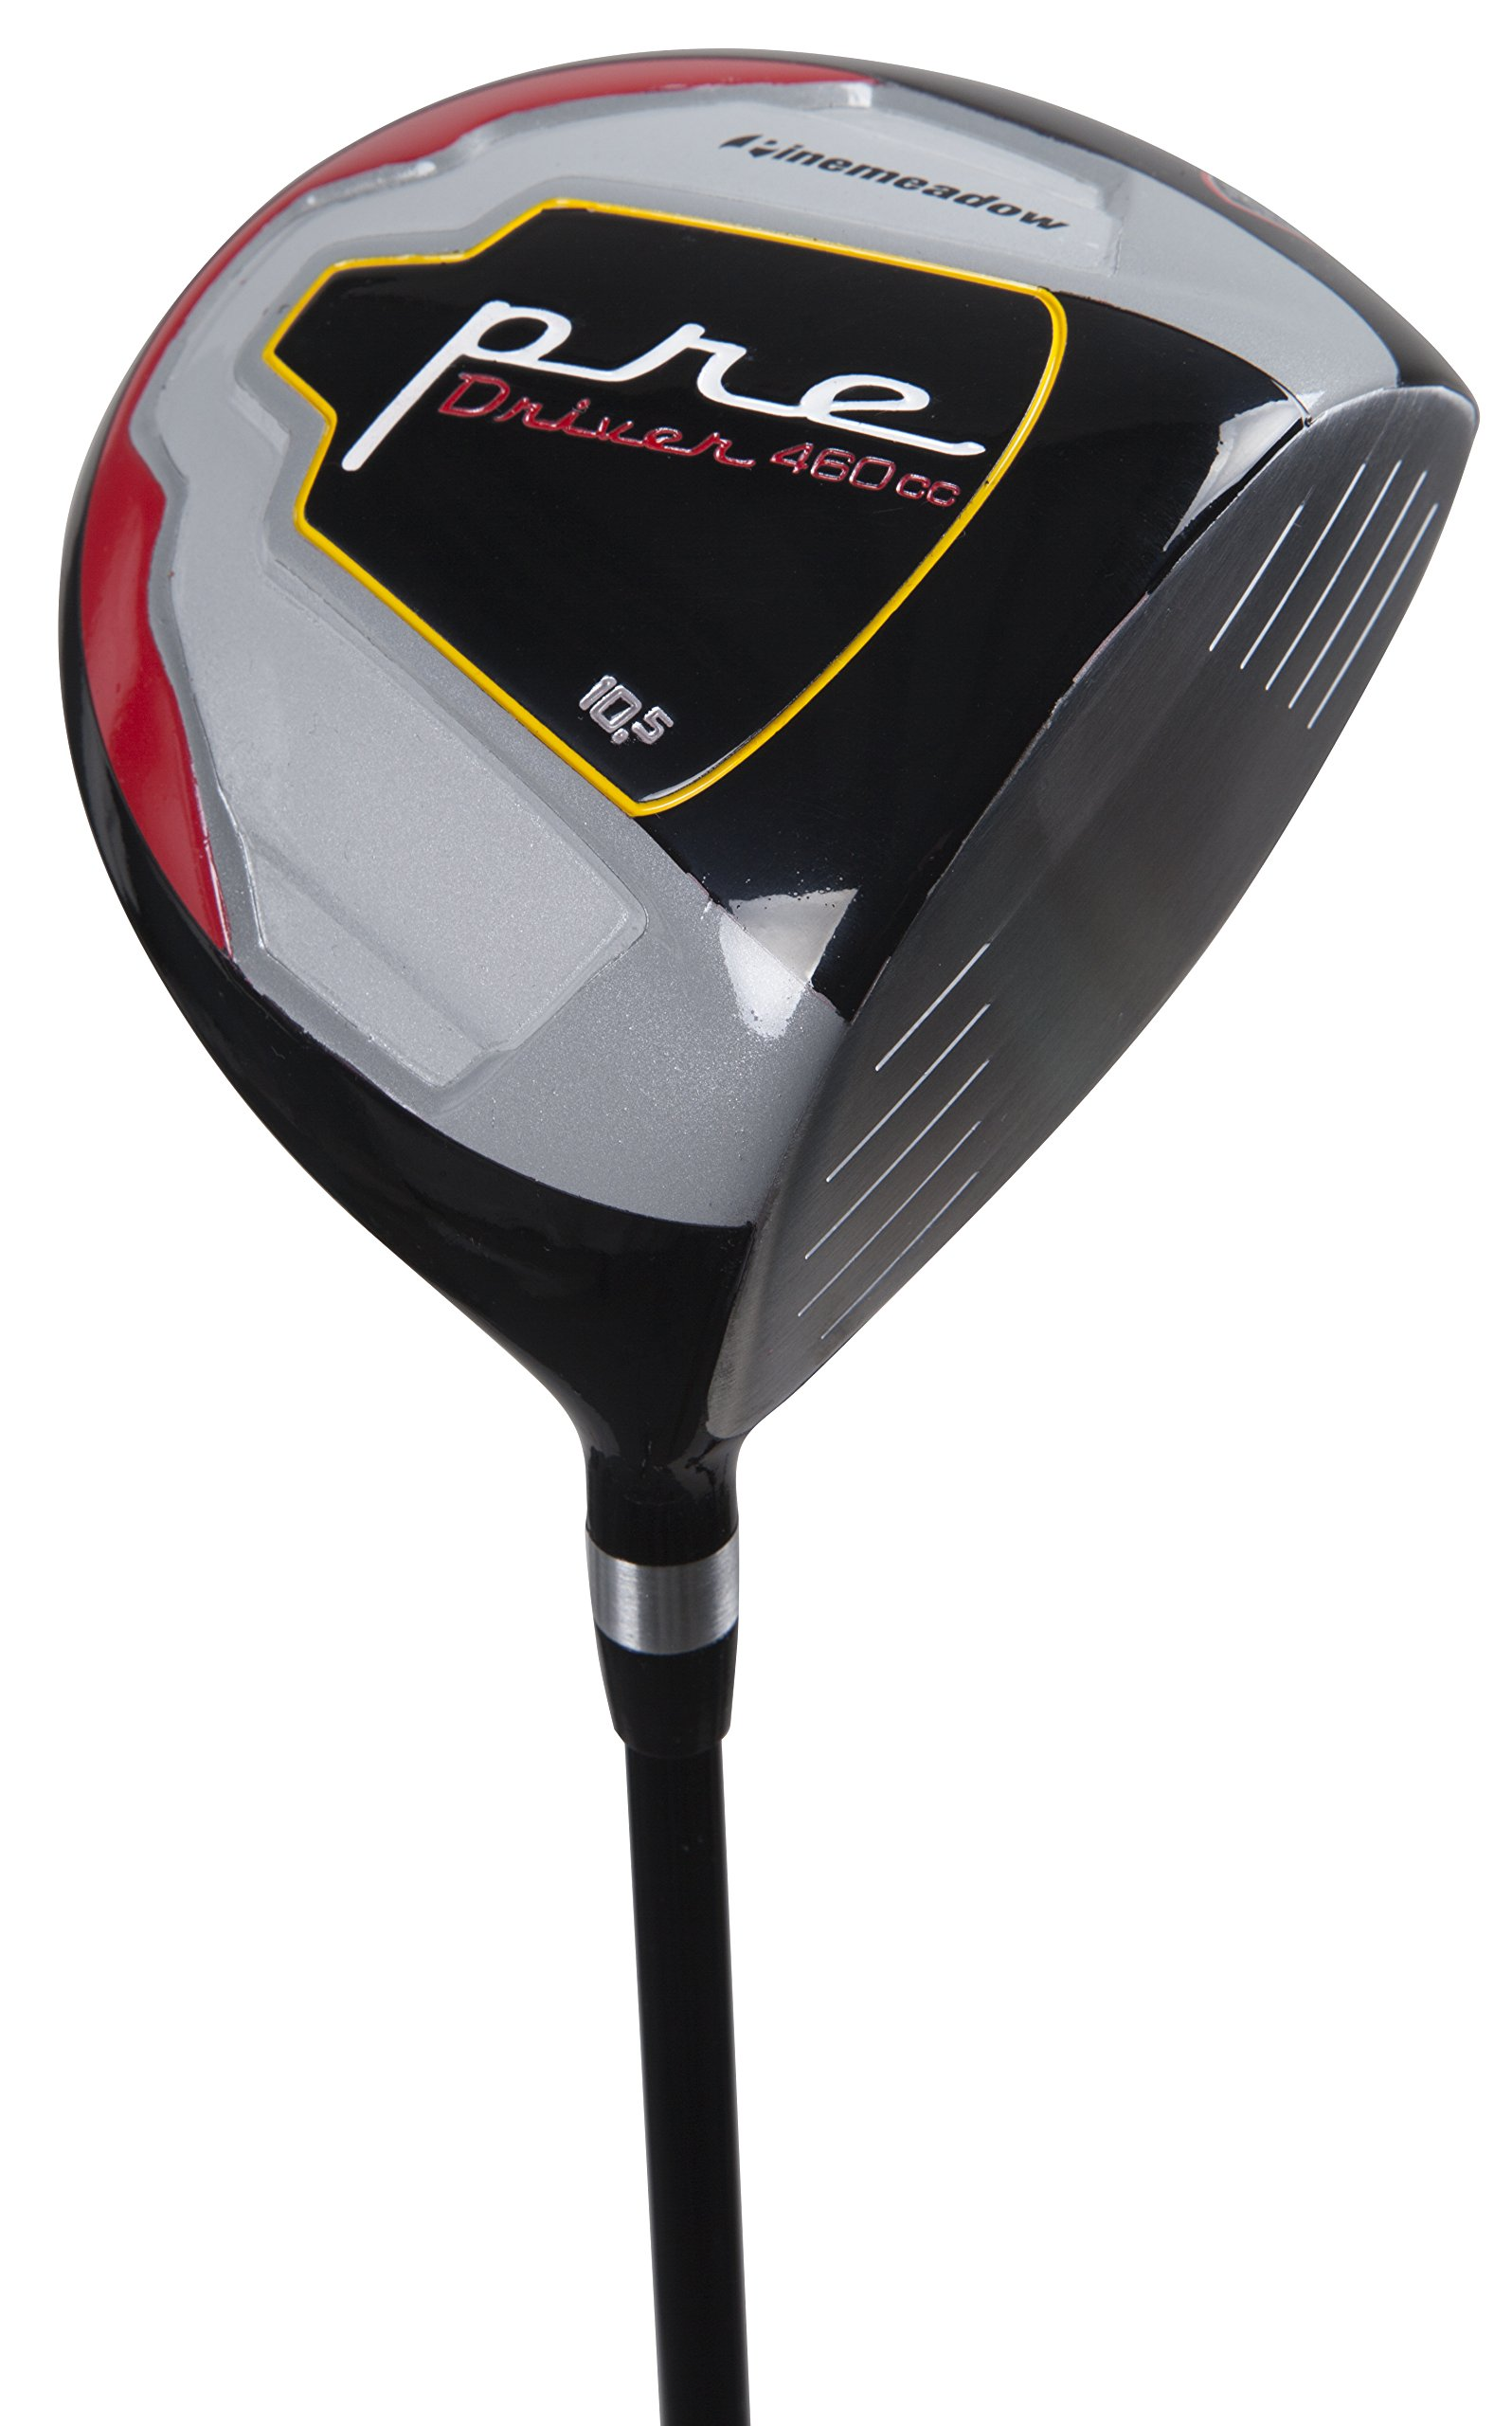 Pinemeadow Pre Driver (Right-Handed, Graphite, Regular, 10.5-Degrees)